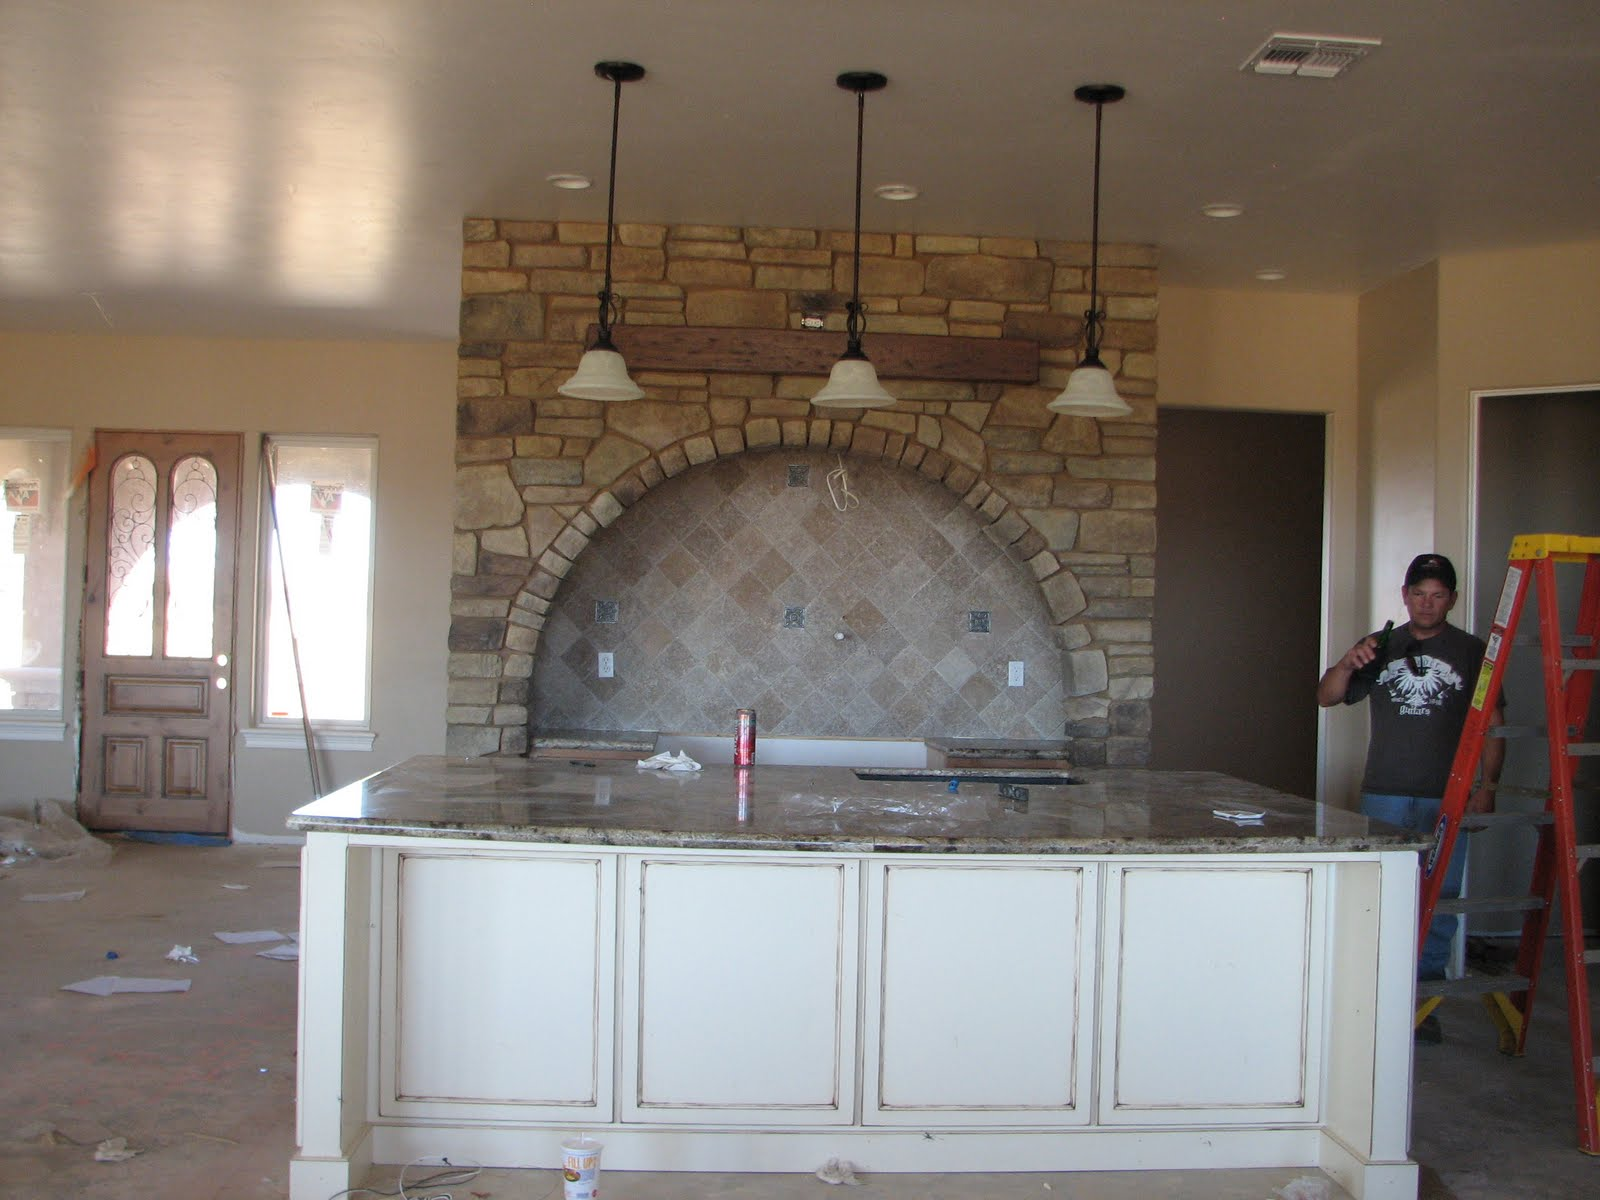 Granite and Fans and Fireplace, Oh My!